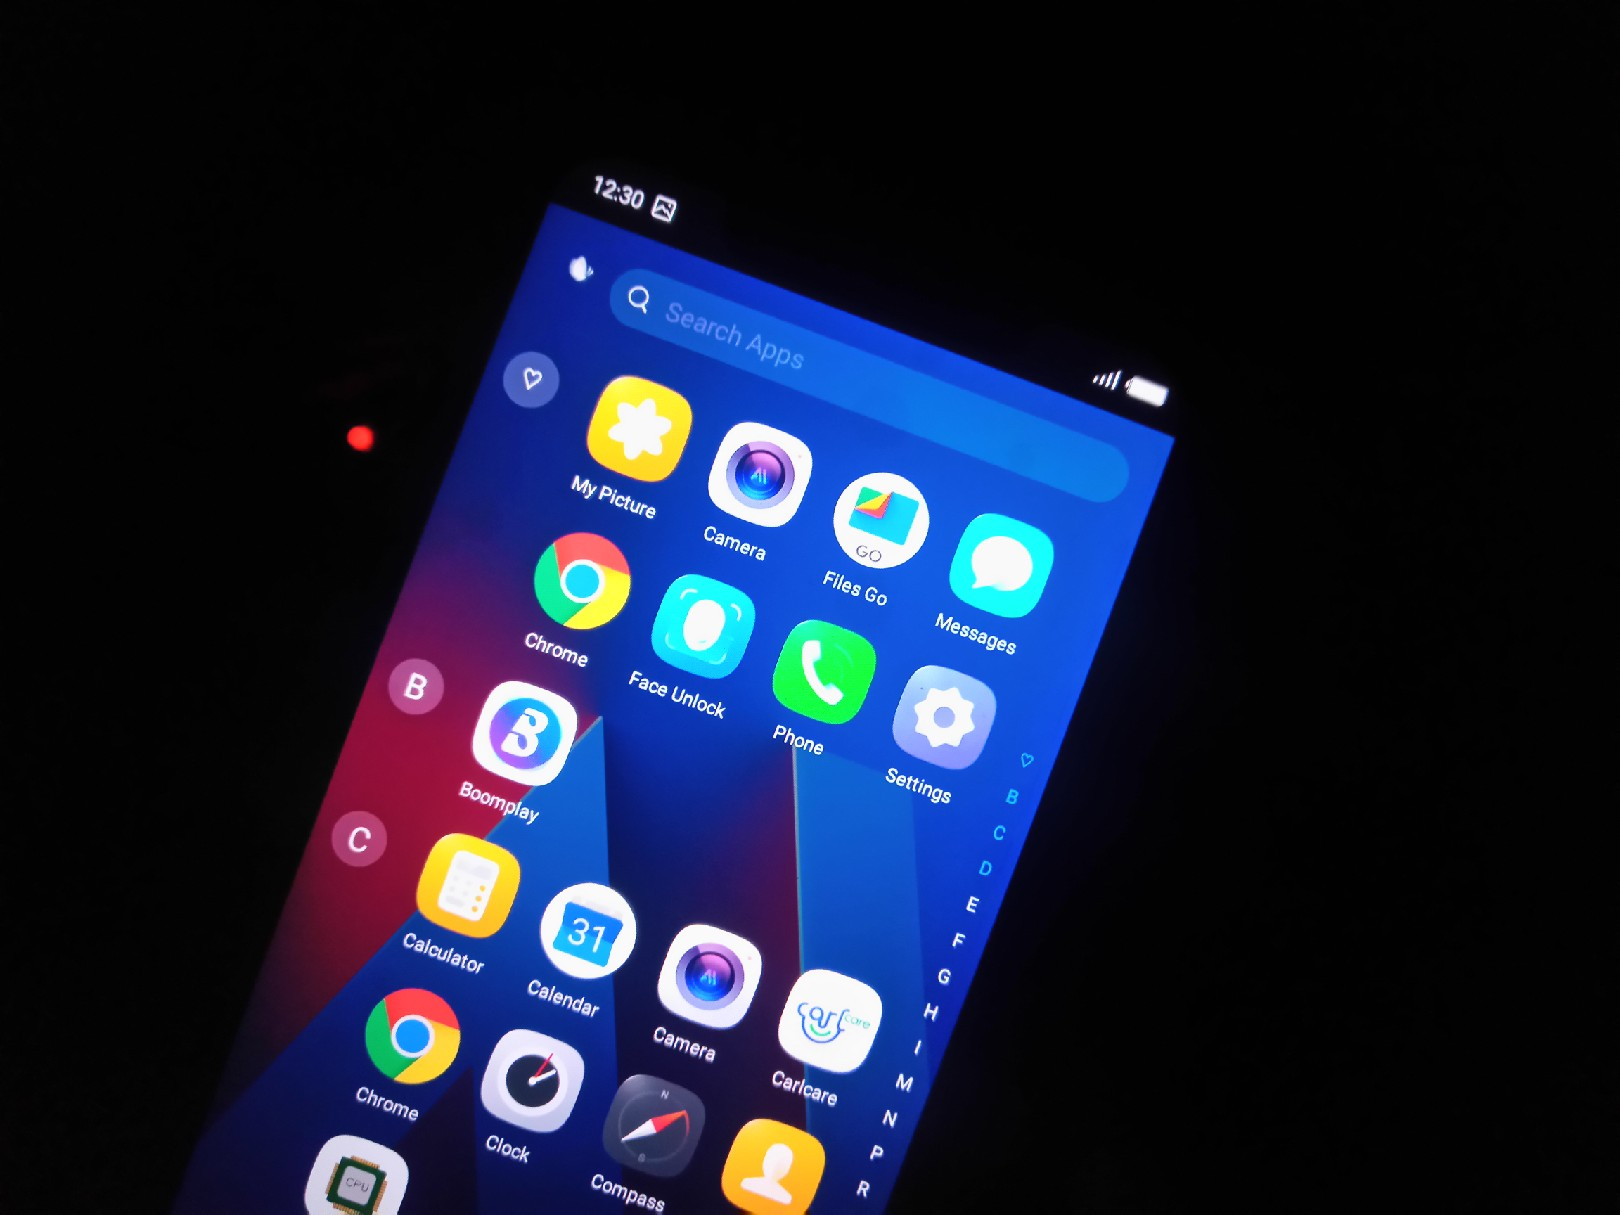 HOW TO HIDE AND UNHIDE THE NOTCH ON CAMON 11 AND CAMON 11 PRO